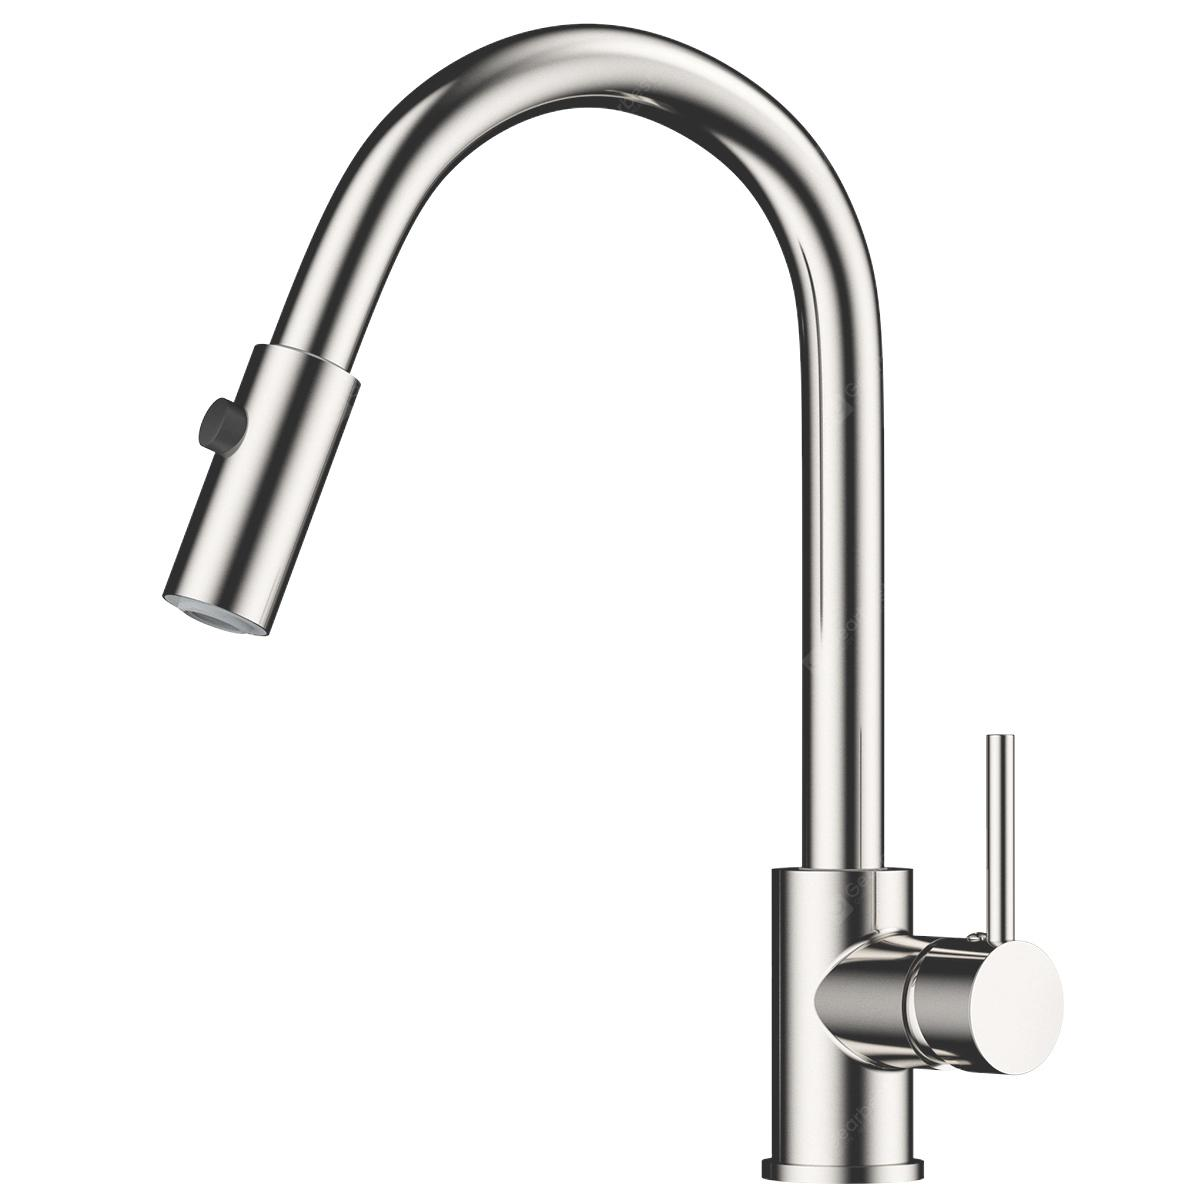 Rackaphile Single Handle Pull Down Sprayer Kitchen Faucet Tap With 360 Degree Swivel Br Spout One Hole Installation Hot And Cold Water Lead Free